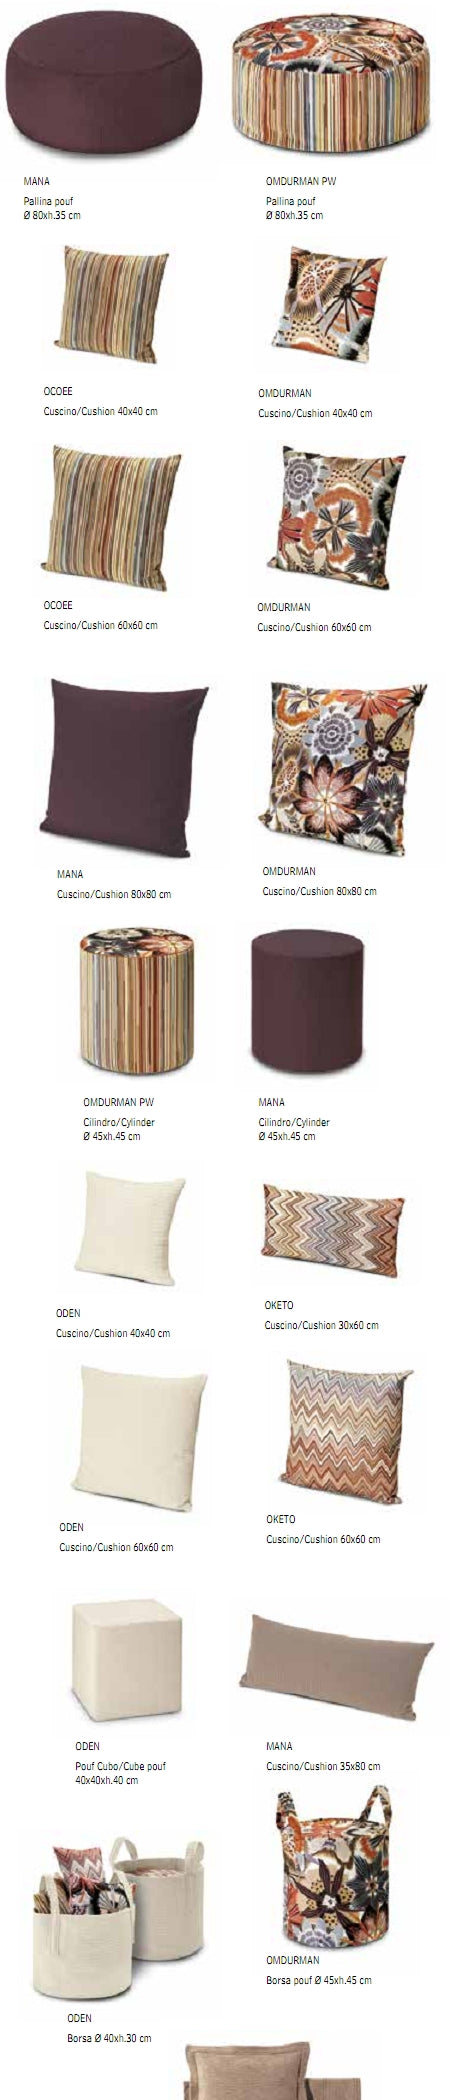 Missoni Cushion and Footstool Collection - Master Classic Trevira 160 - italydesign.com